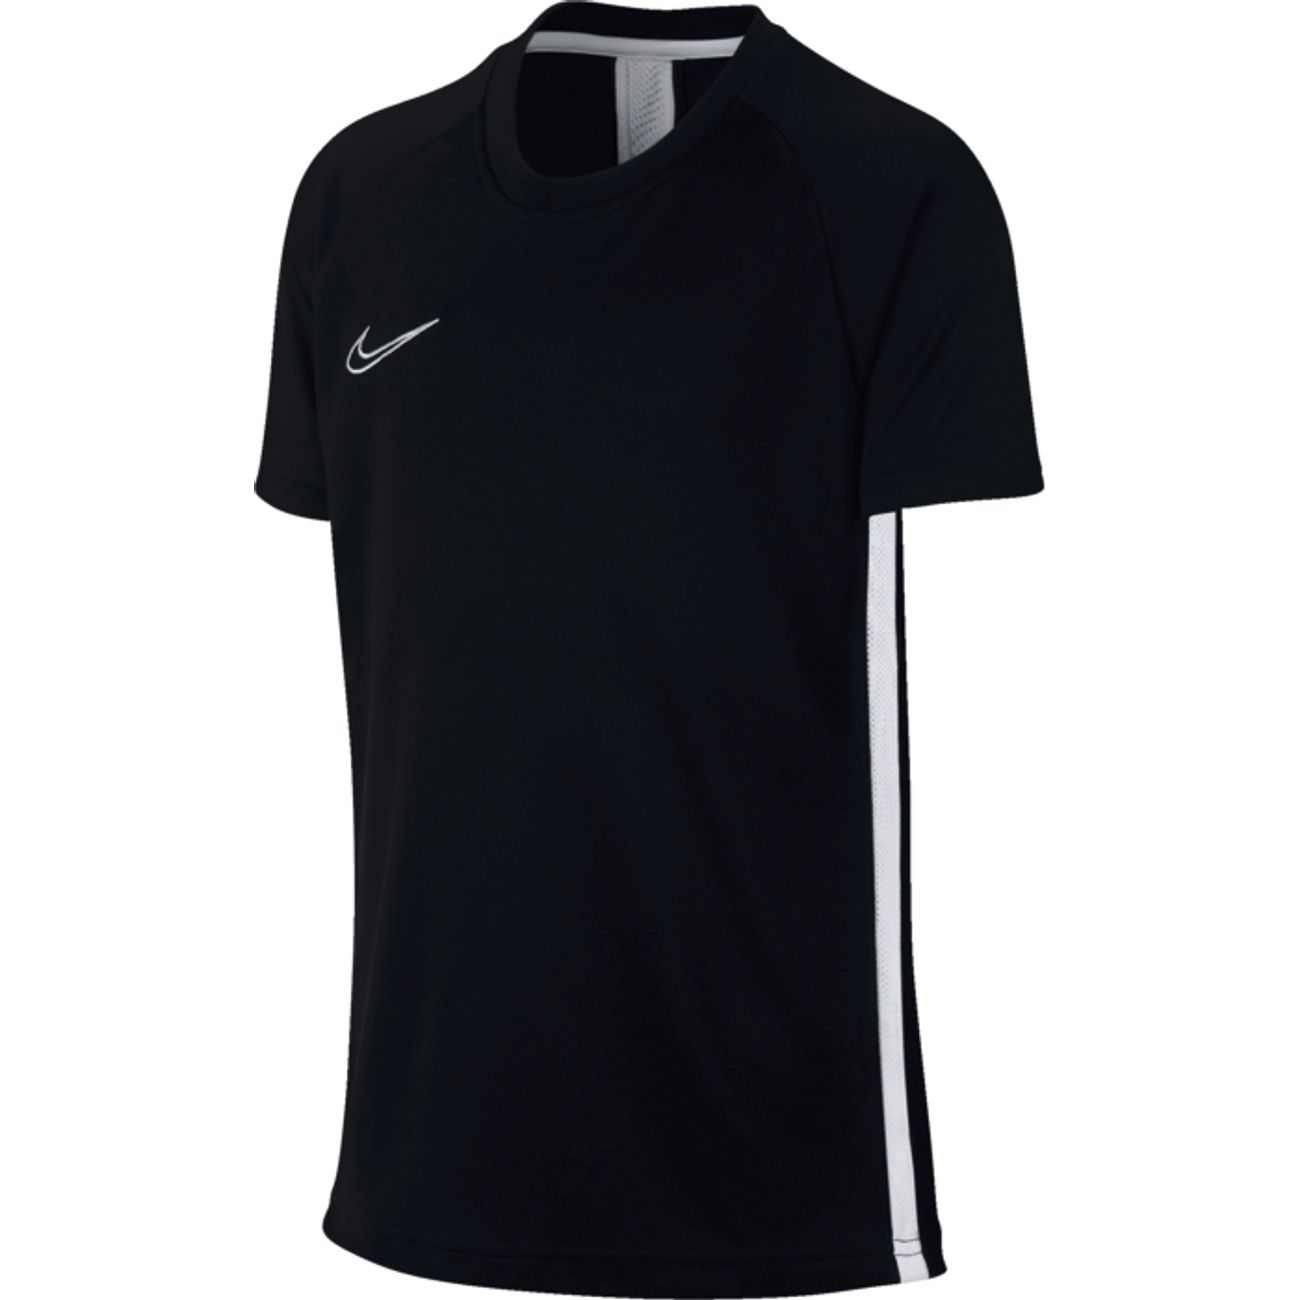 MAILLOT Football junior NIKE DRY ACDMY TOP SS NOIR